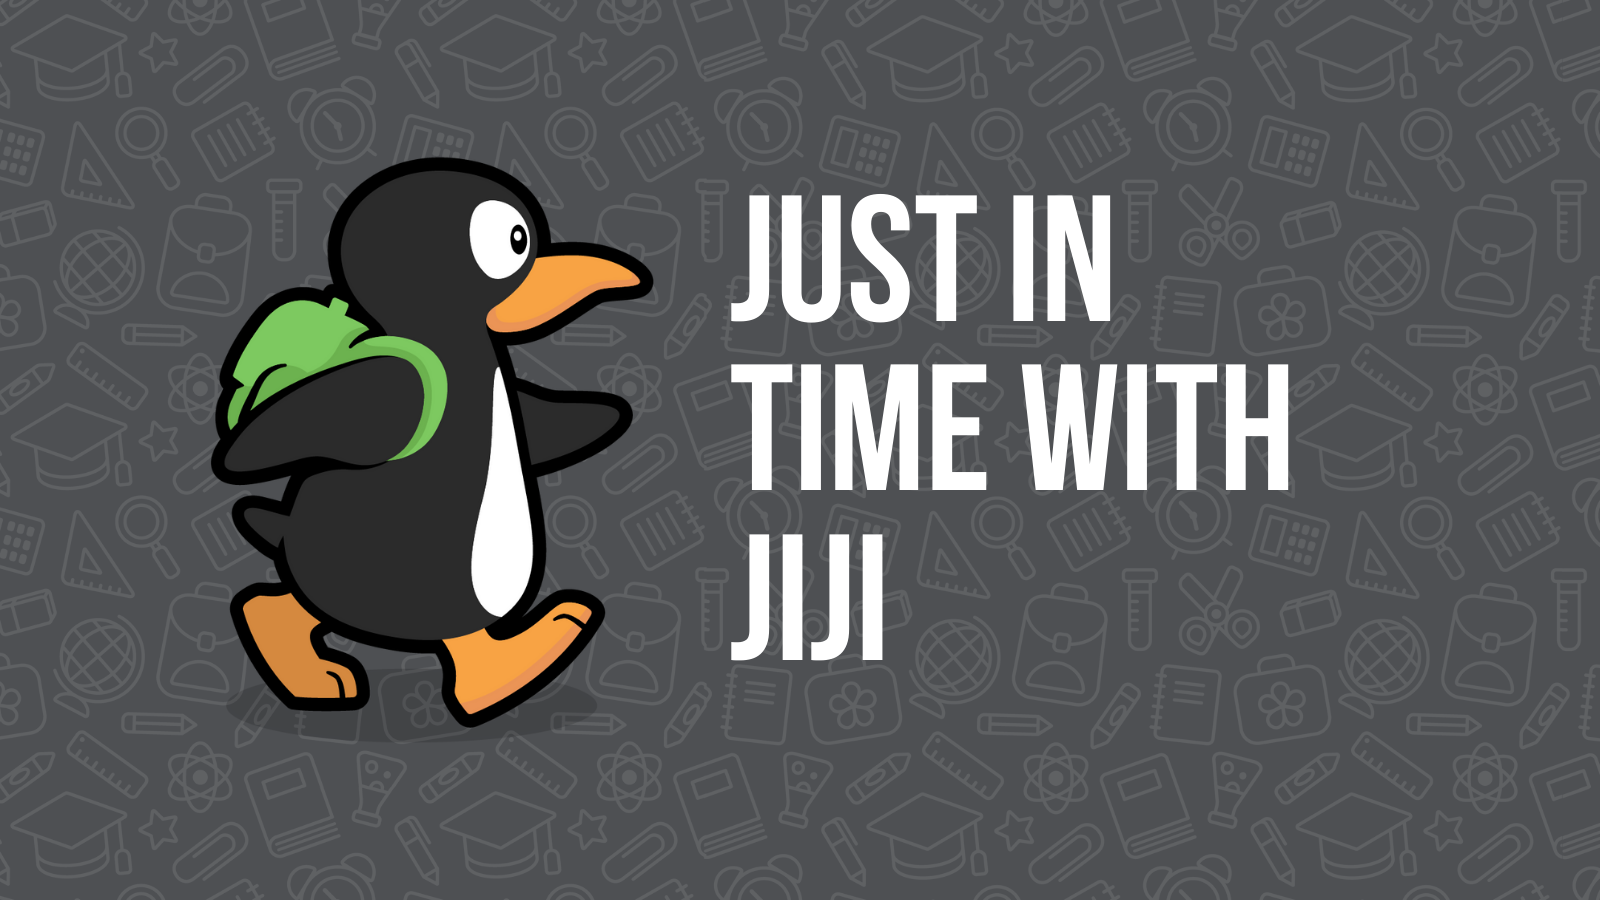 October Updates: Just in Time with JiJi